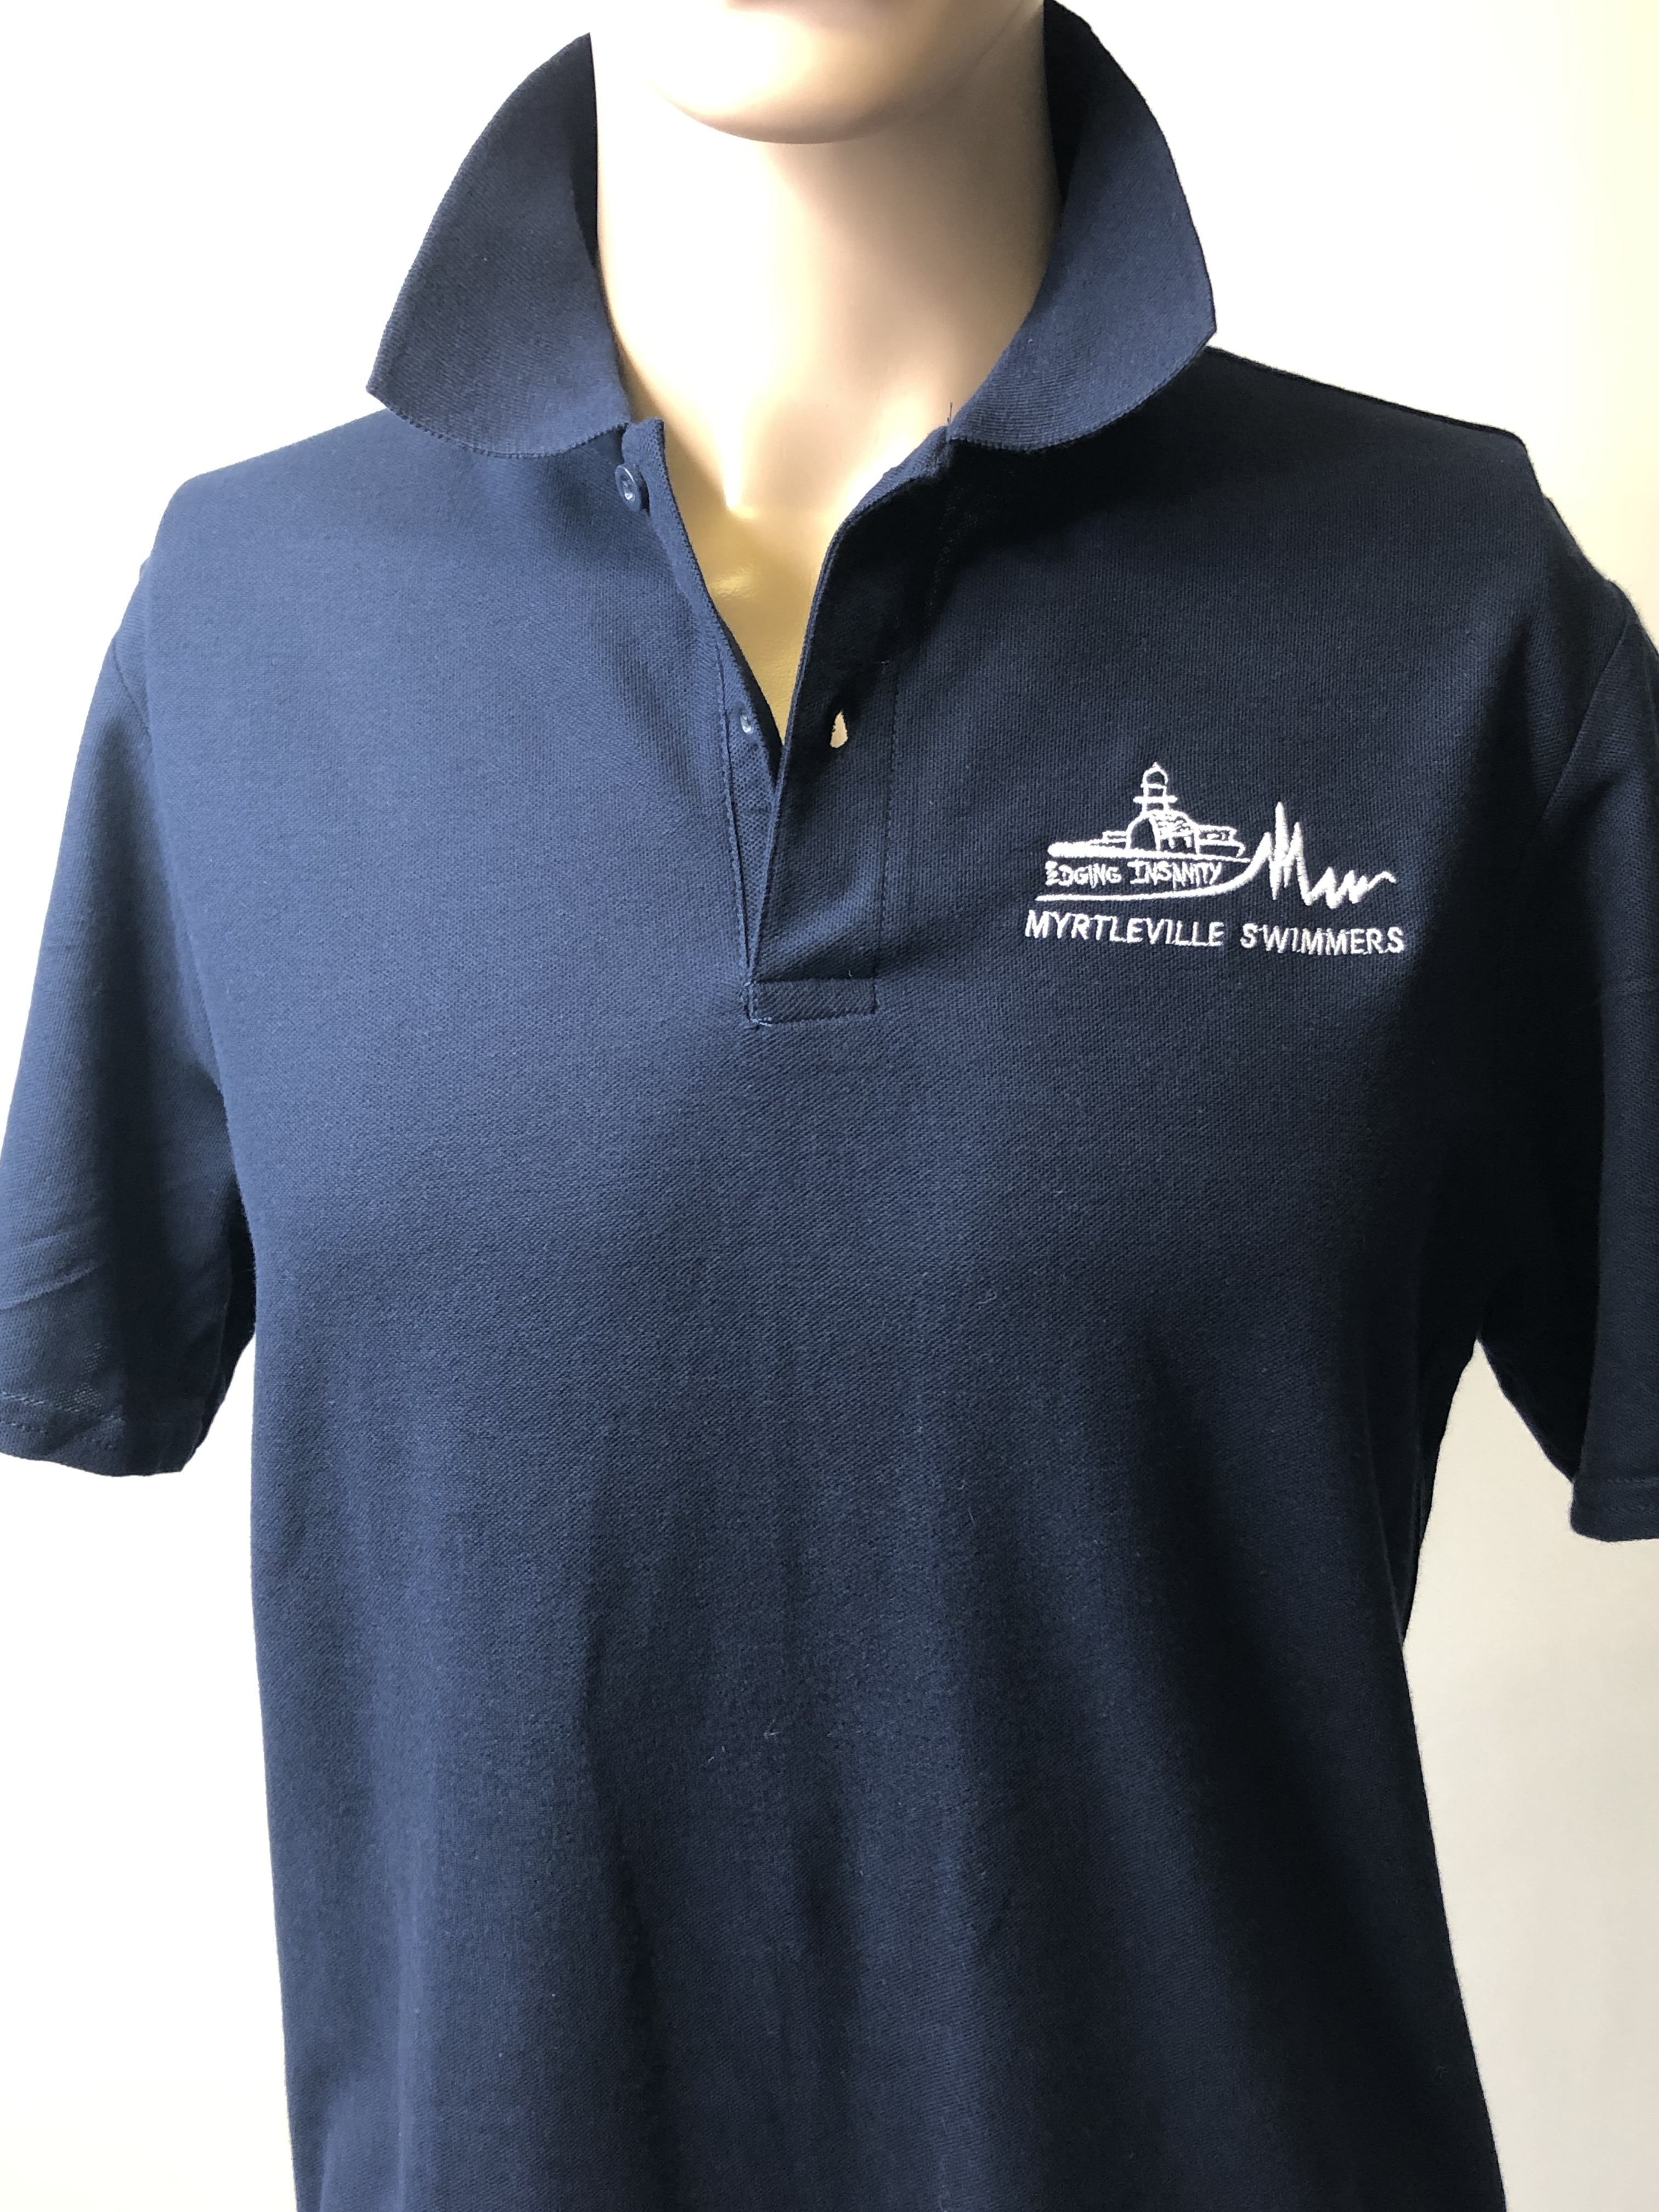 myrtleville swimmers polo shirt